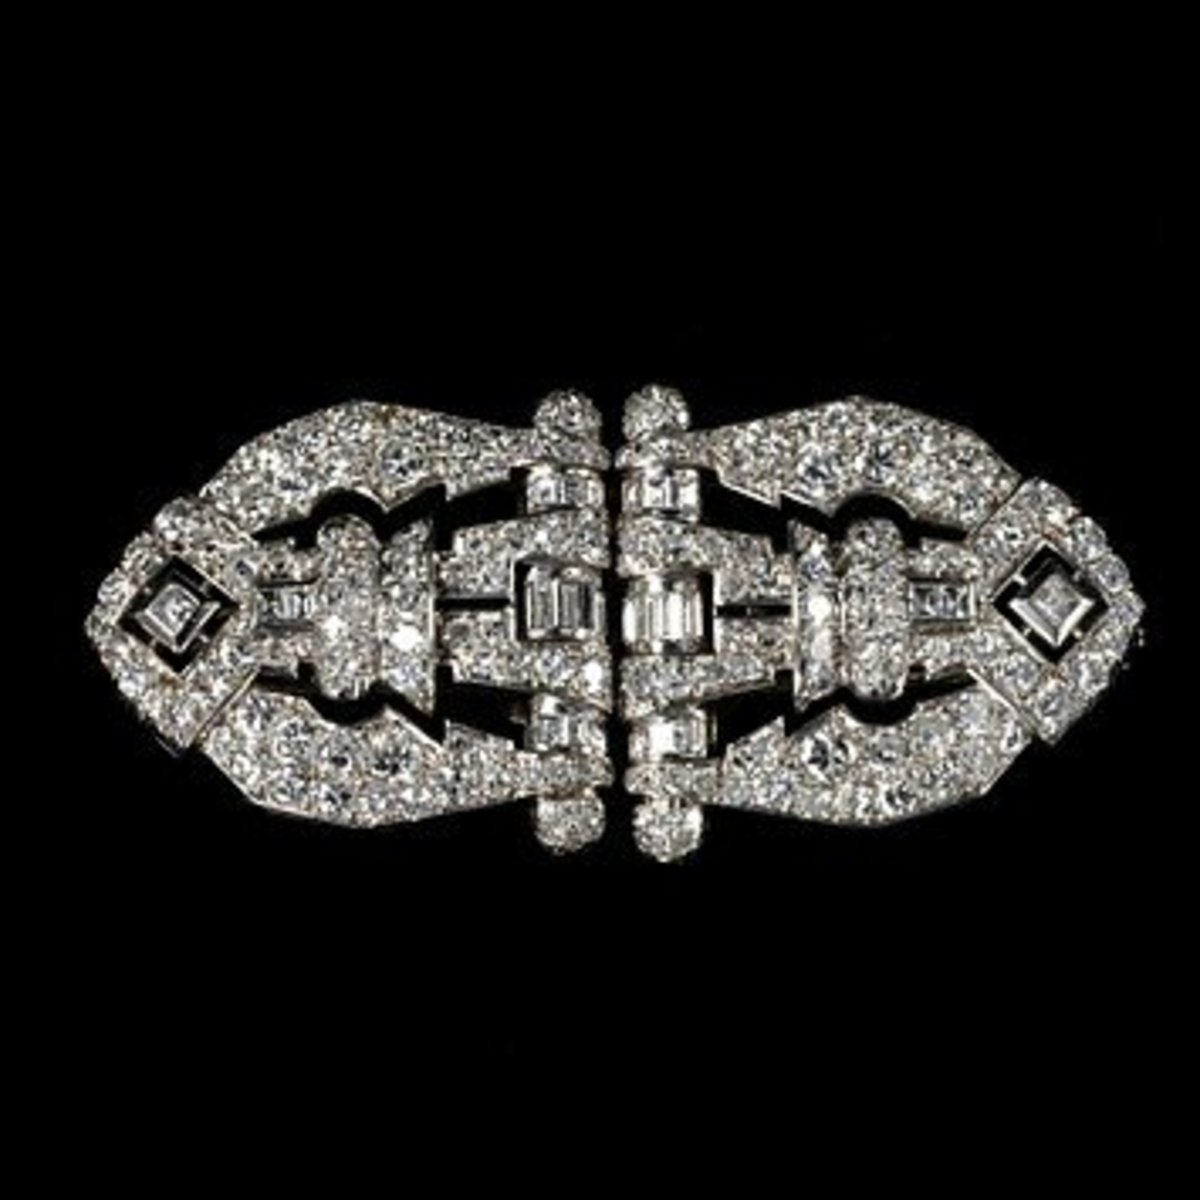 Art Deco diamond and platinum brooch.